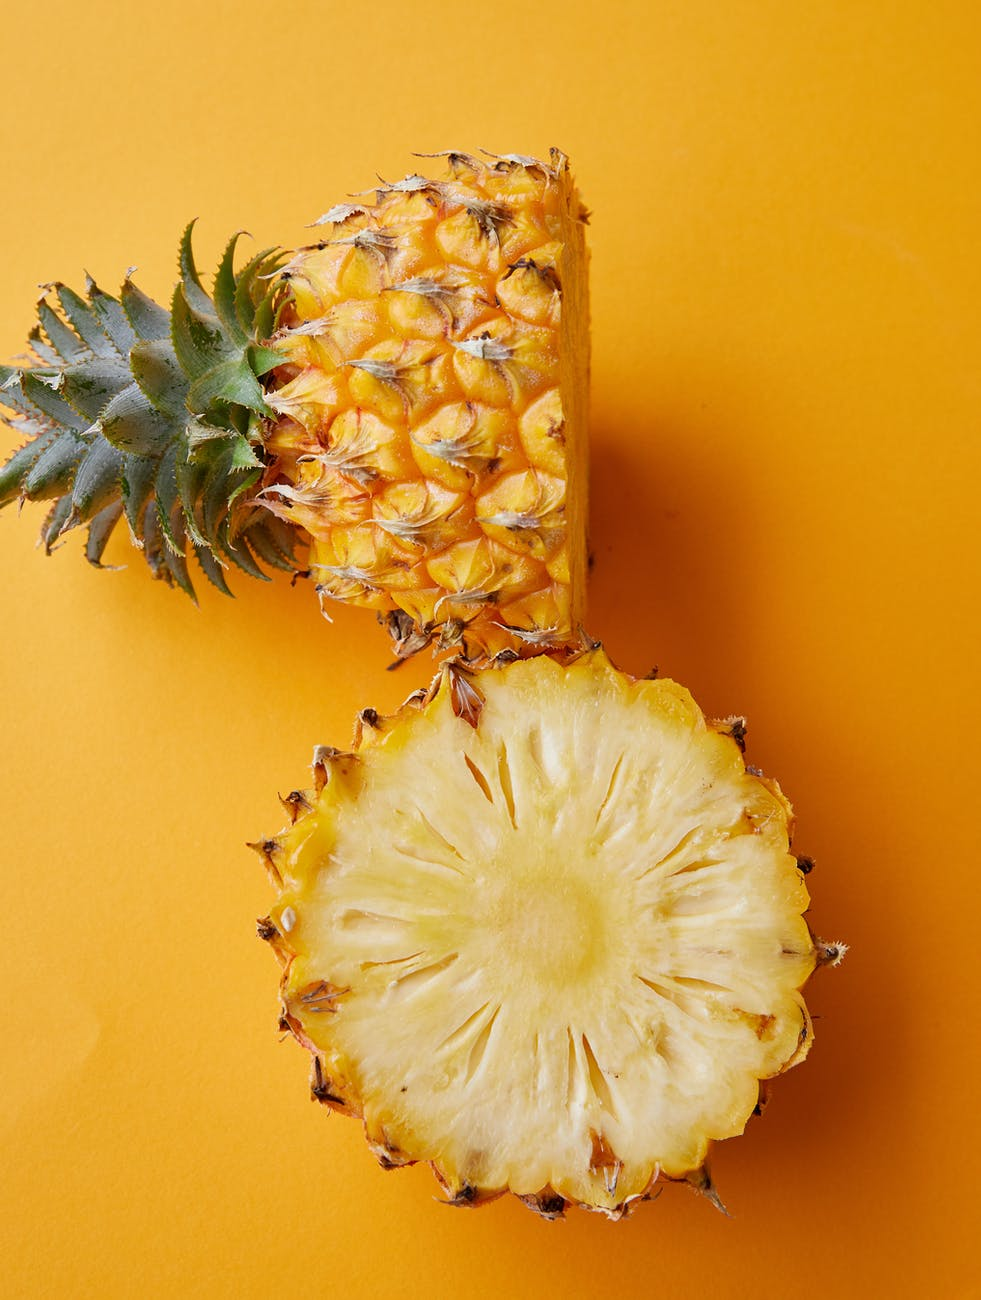 halved tasty tropical pineapple on yellow background